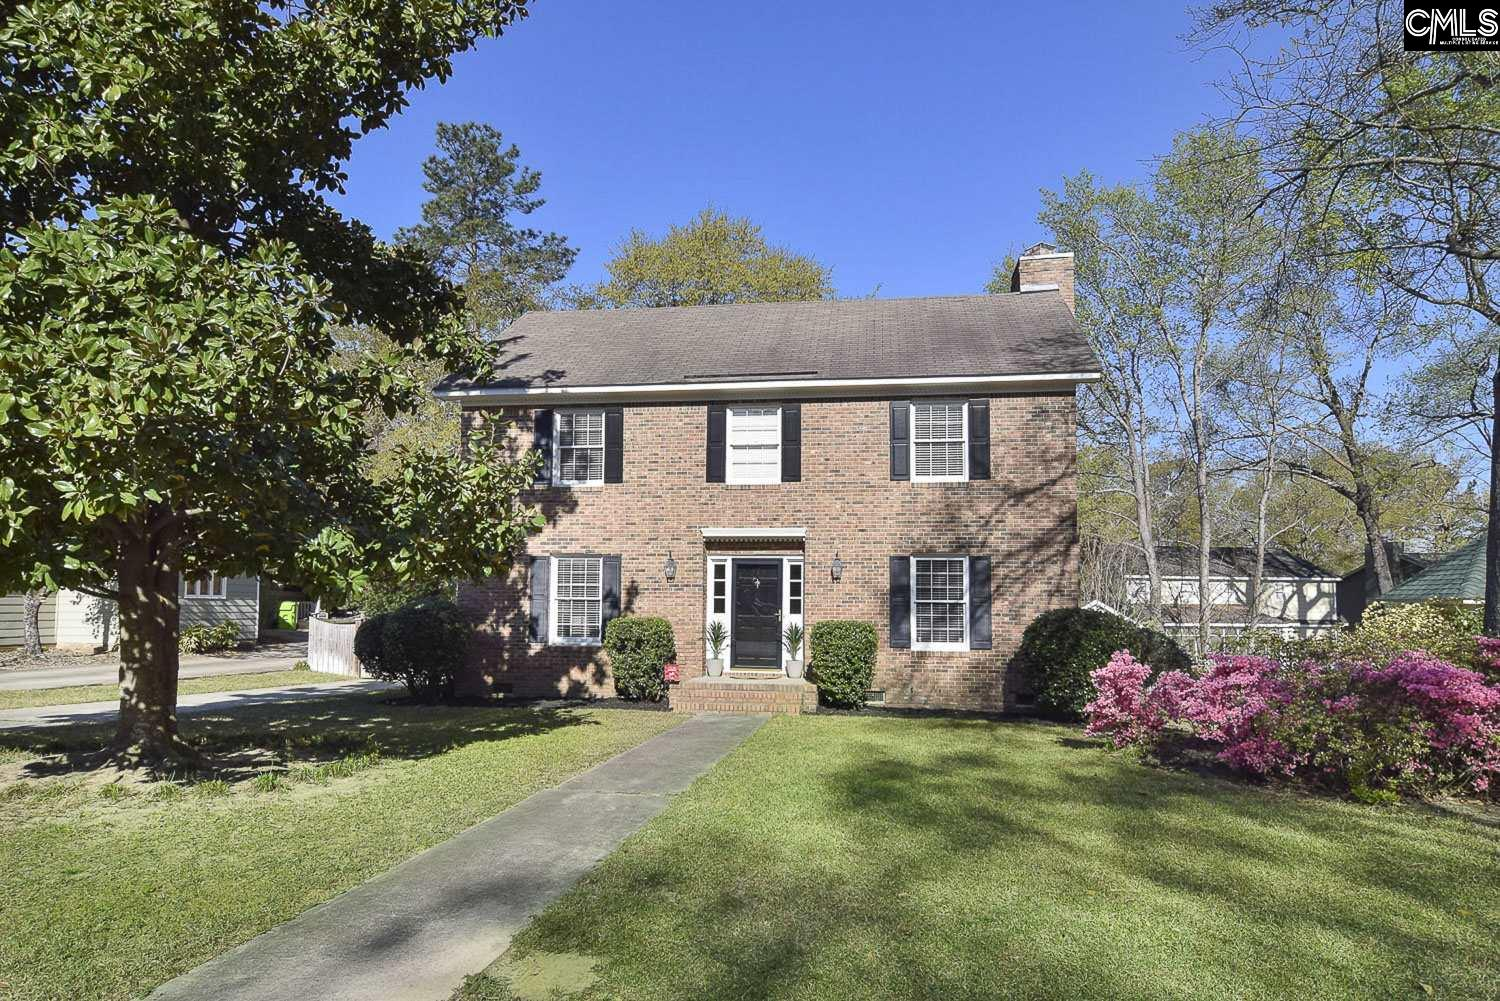 124 Chimney Hill Columbia, SC 29209